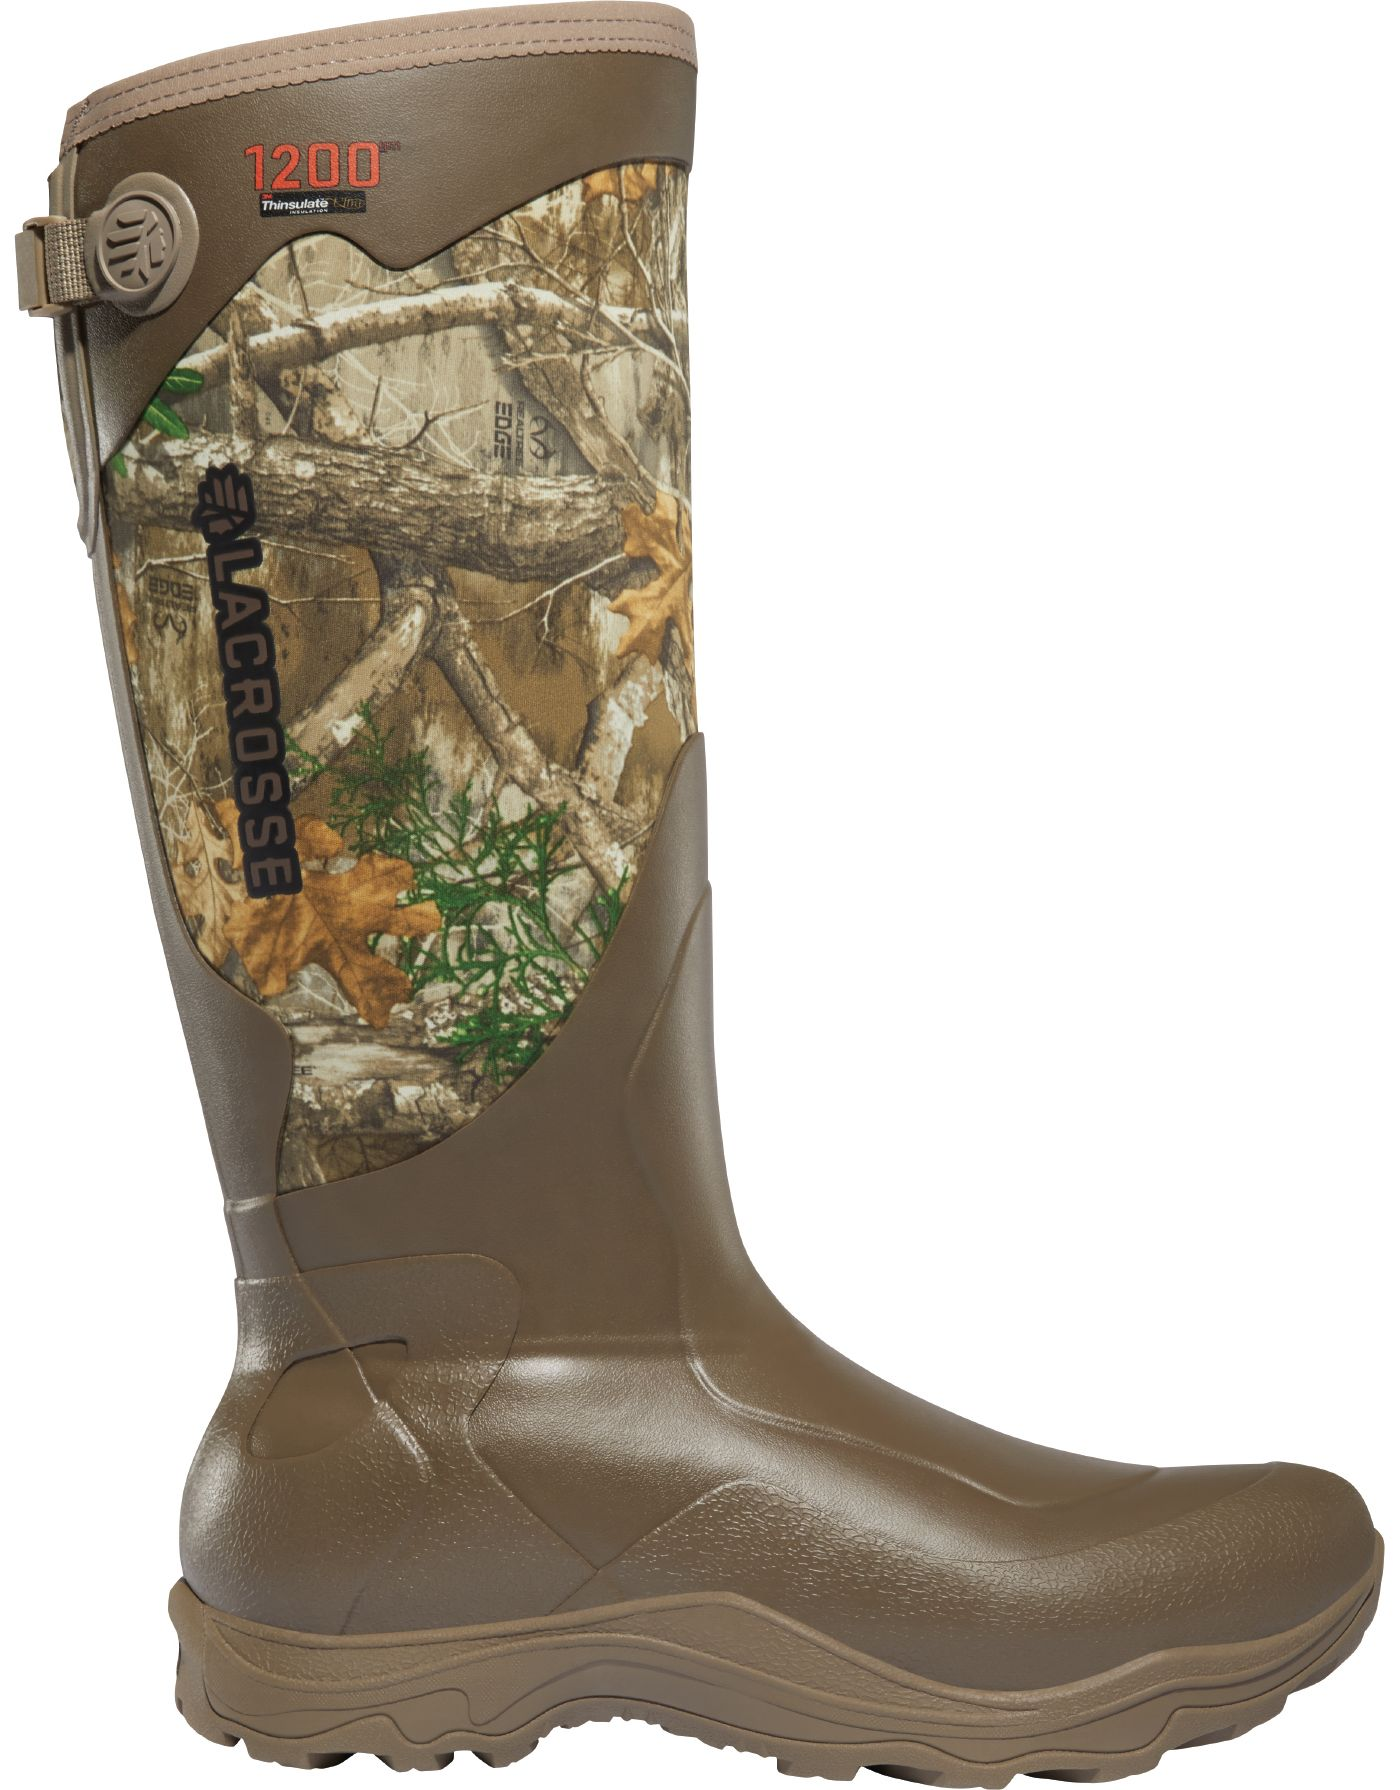 LaCrosse Men's Alpha Agility 17'' Realtree Edge 1200g Rubber Hunting Boots